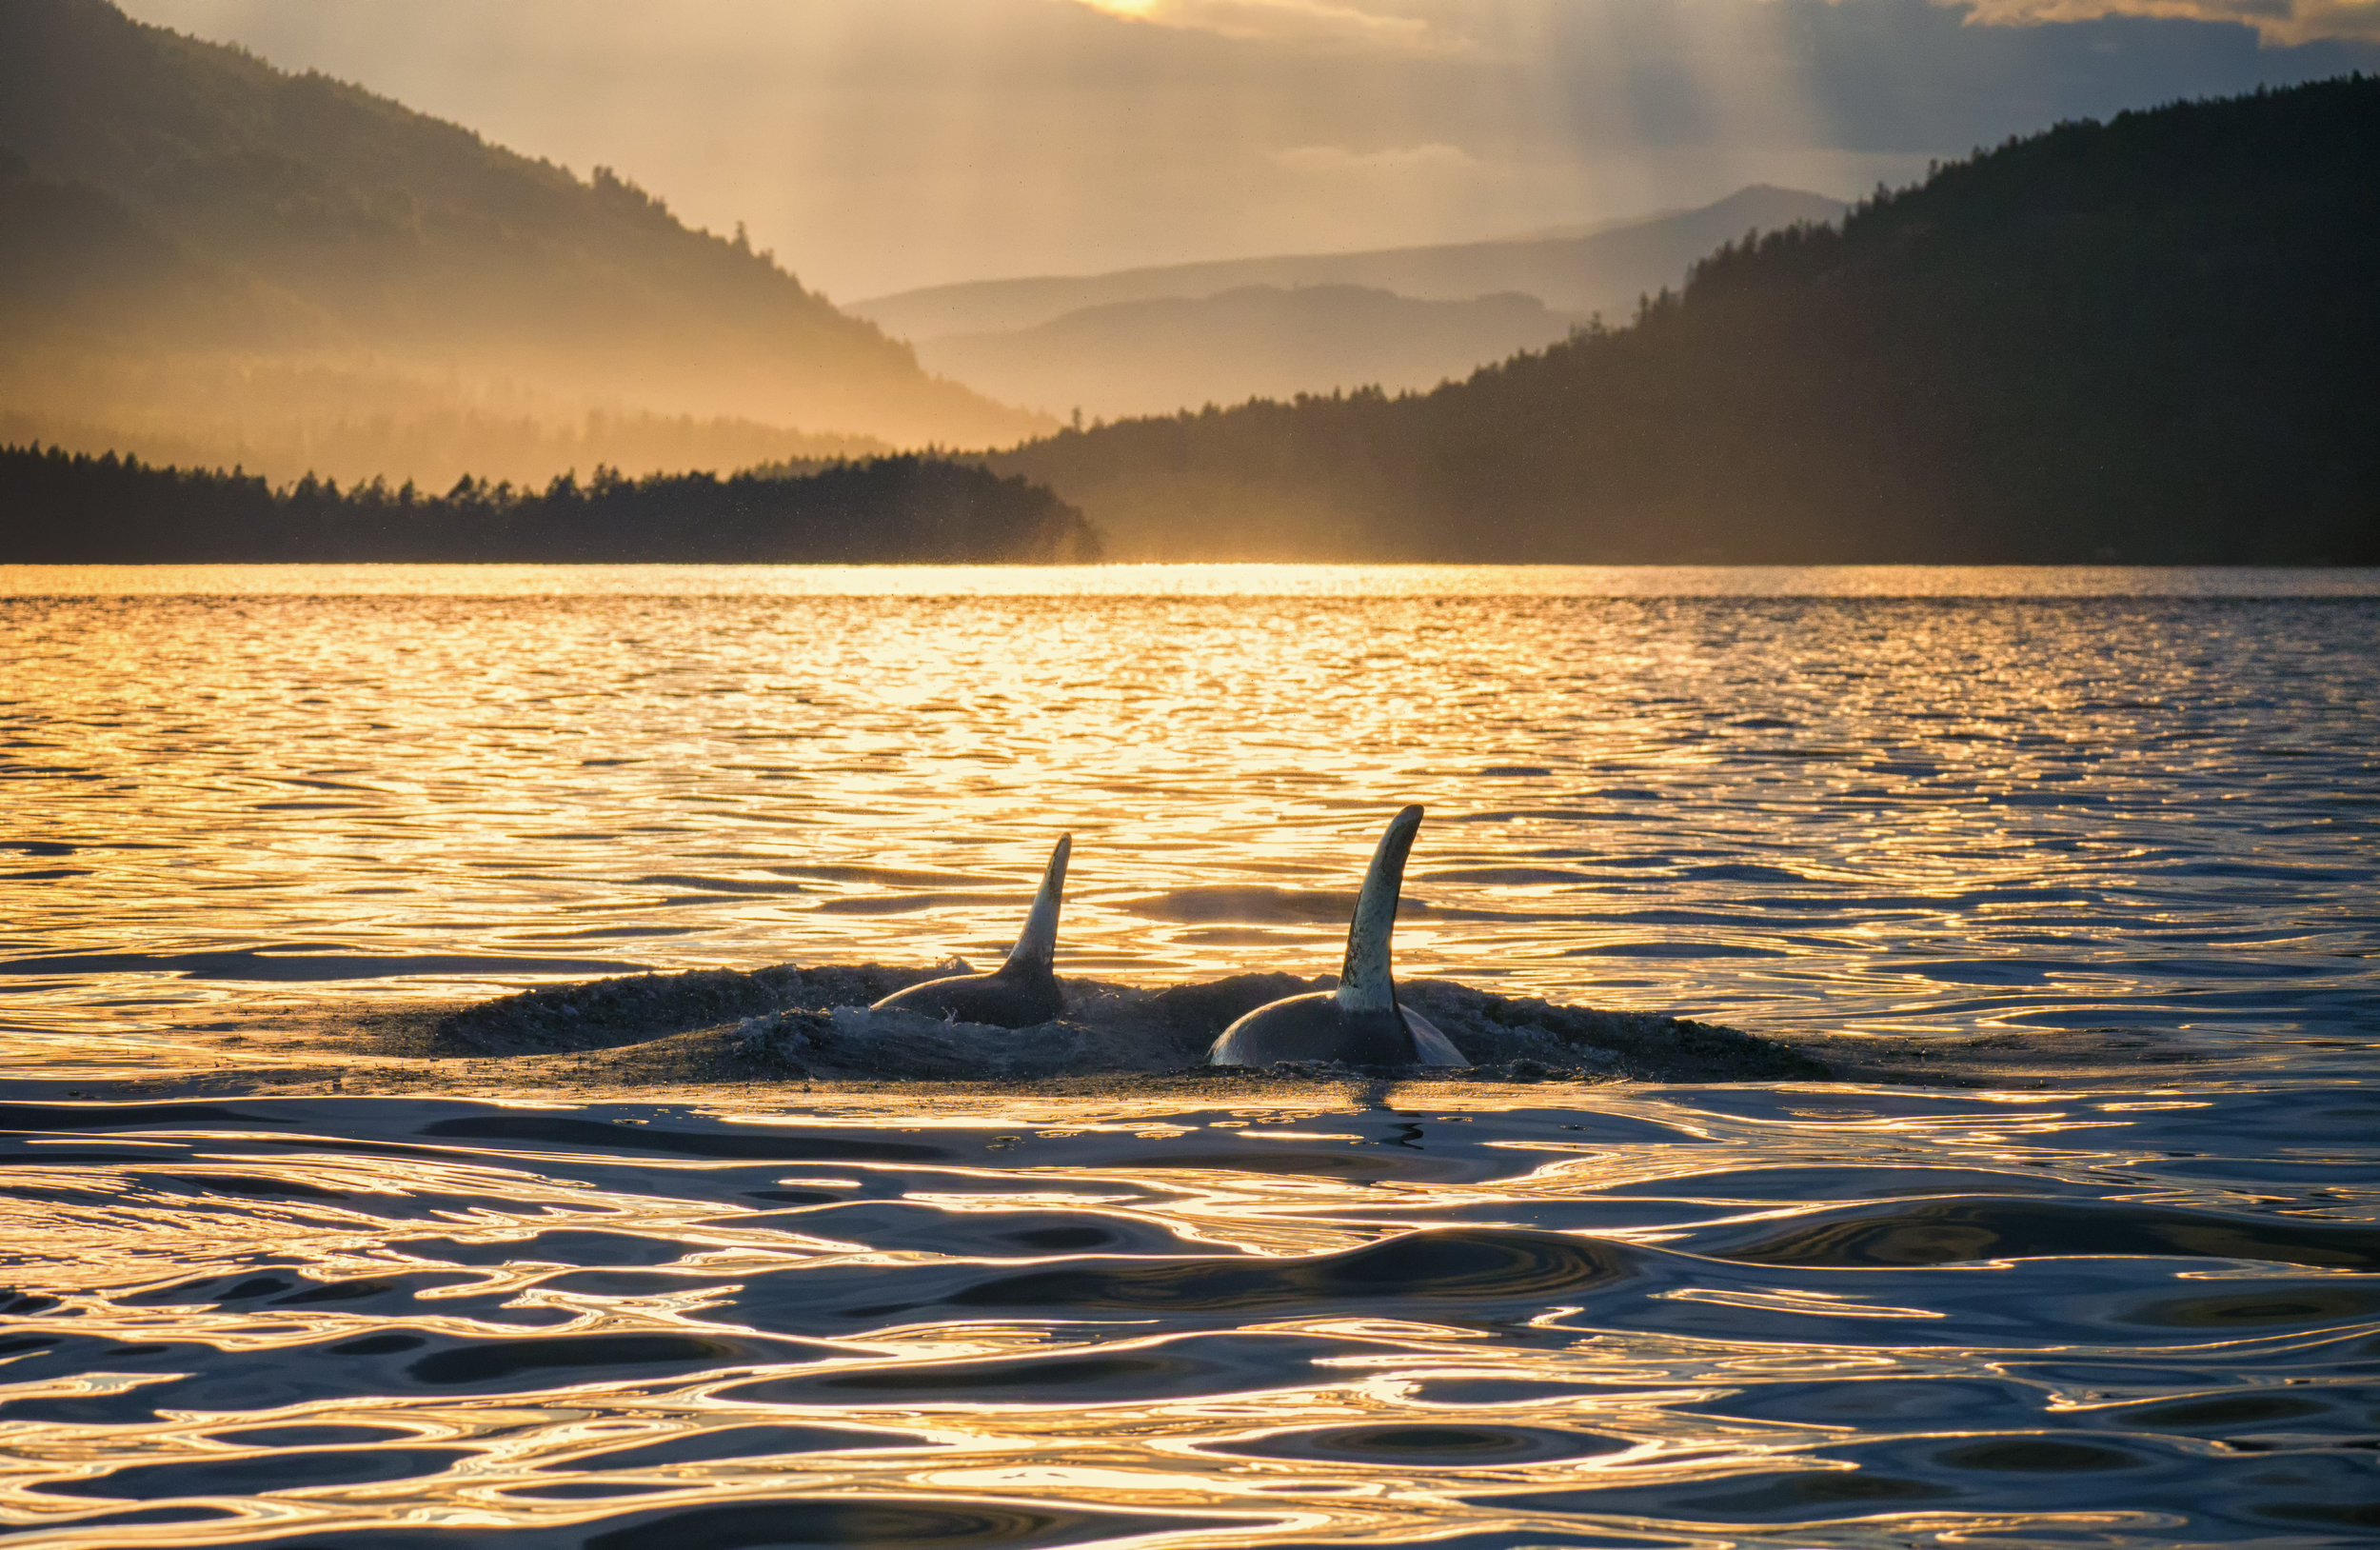 Orcas swim off into the golden sunset